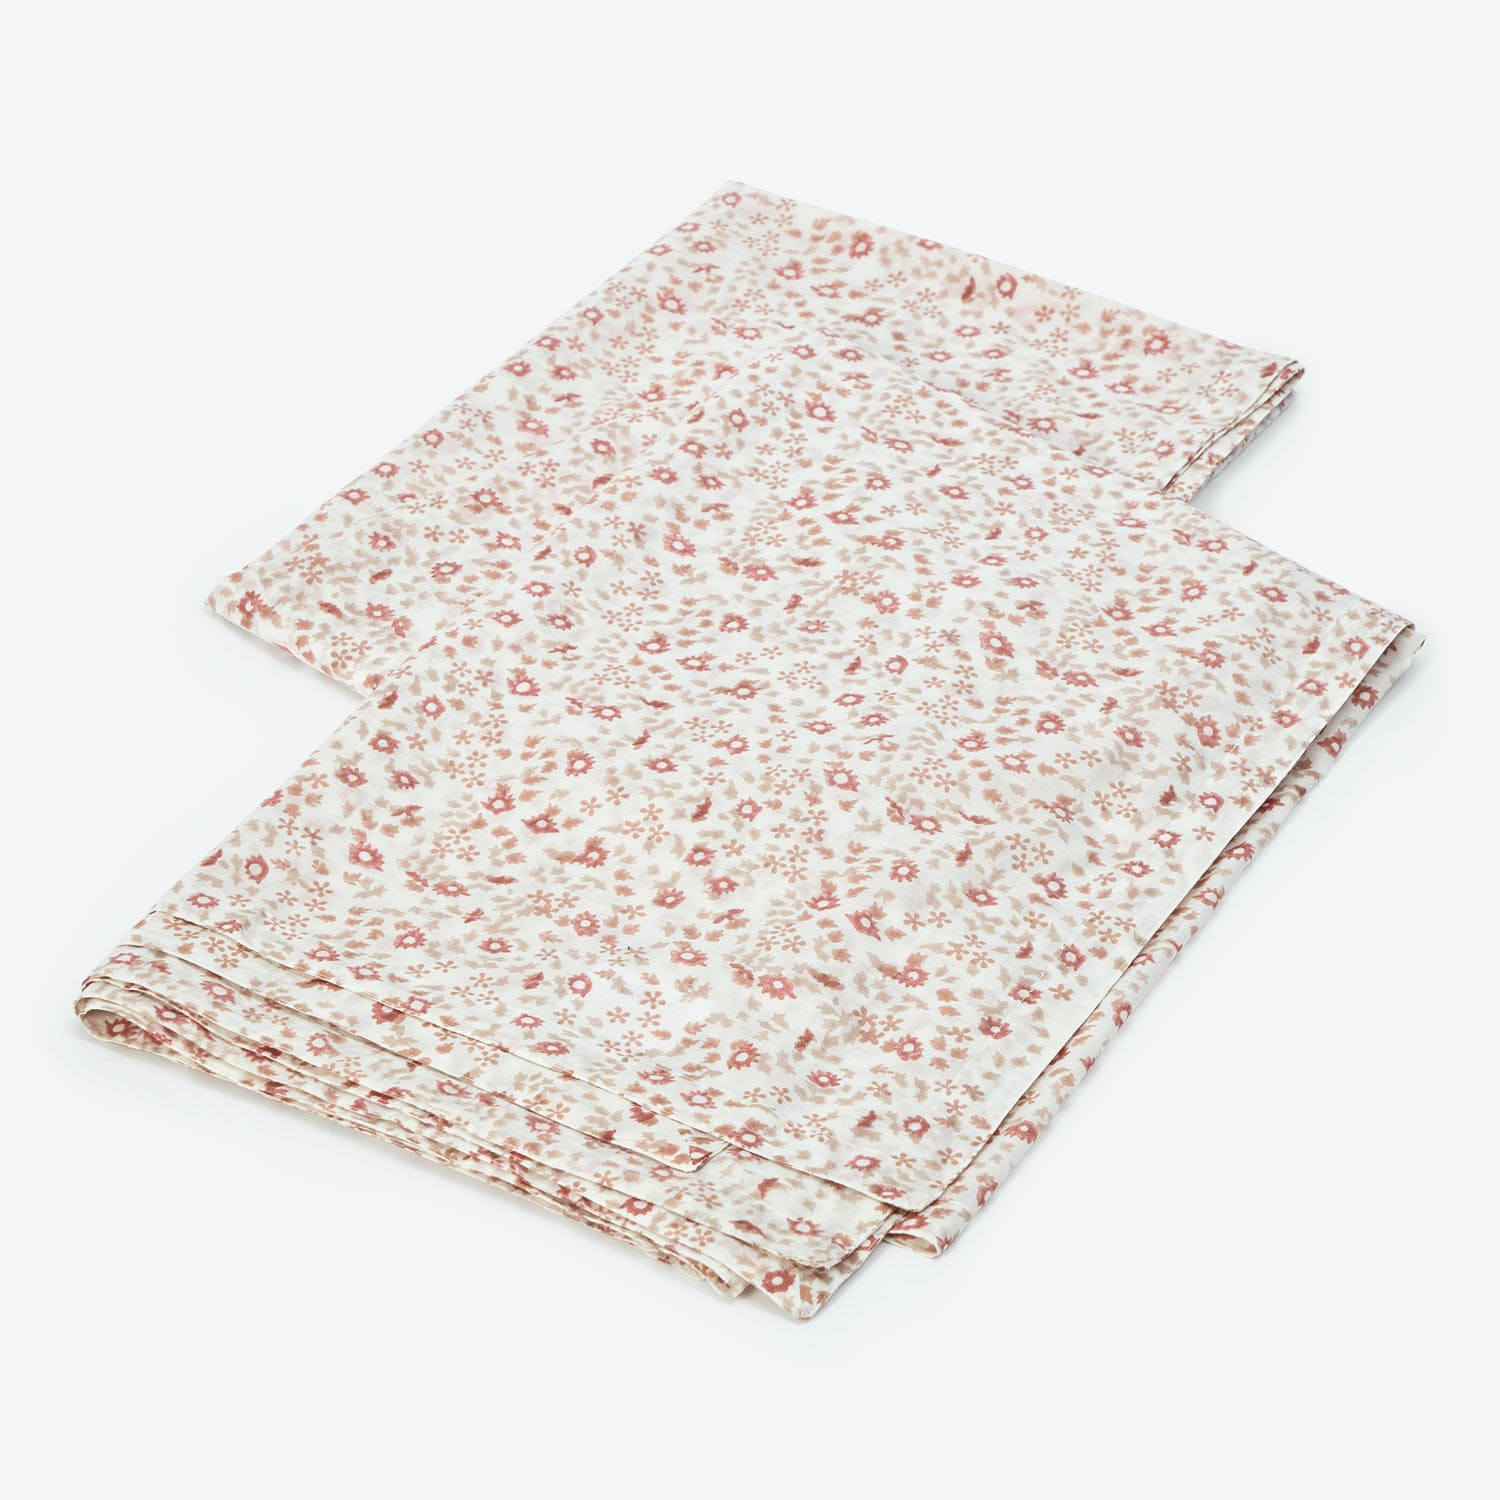 Product Image - Small Floral Cotton Voile Fitted Sheet Multi